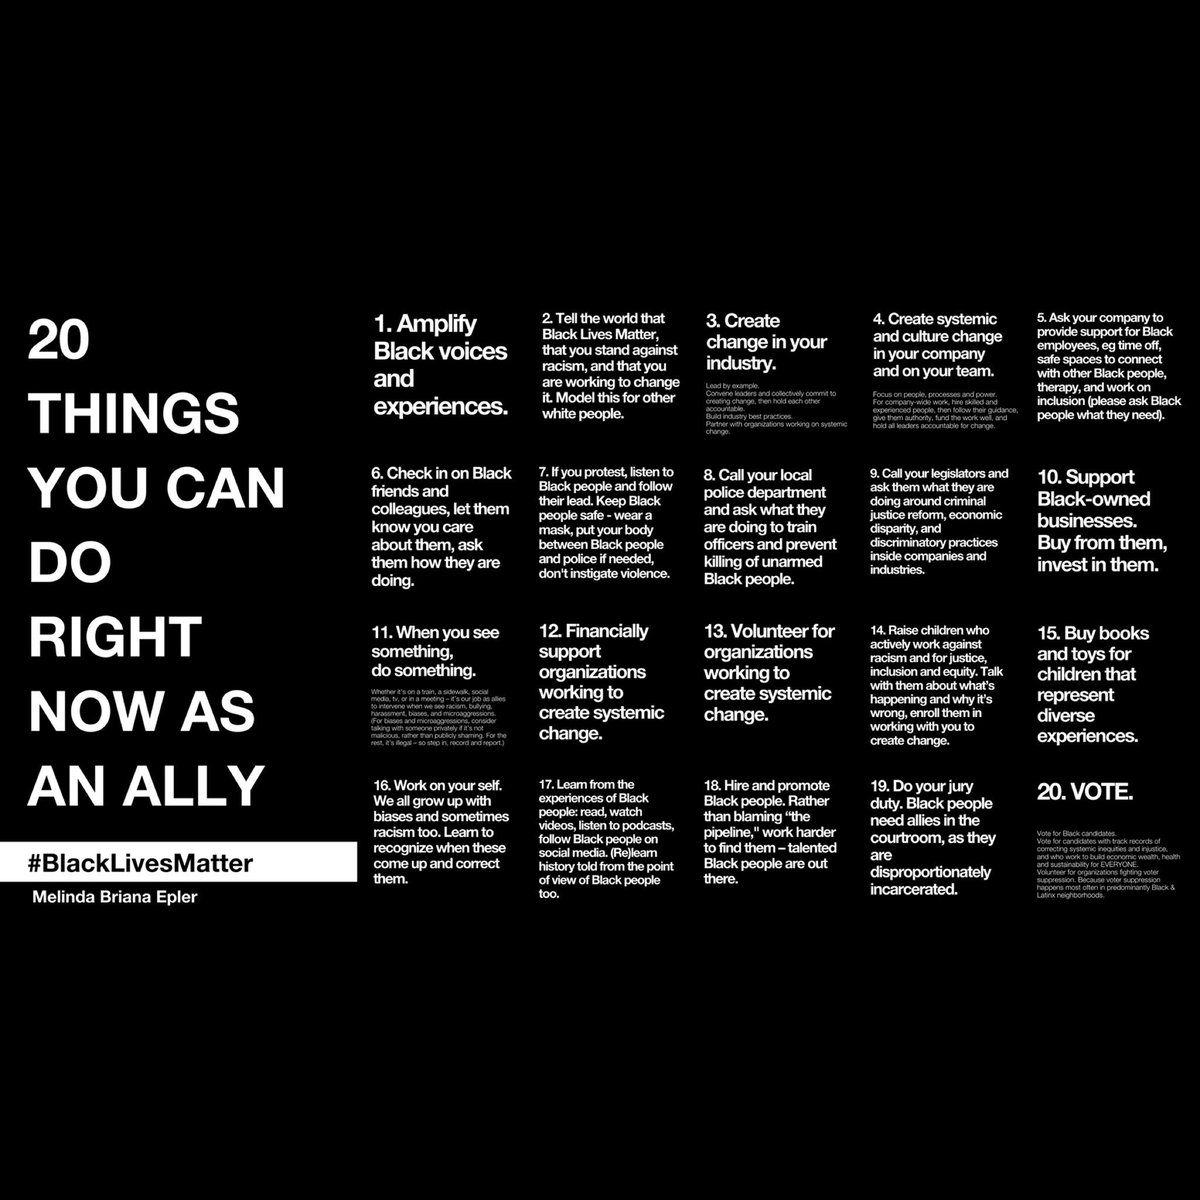 20 ways to be an active ally - I found this list to be very informative : )